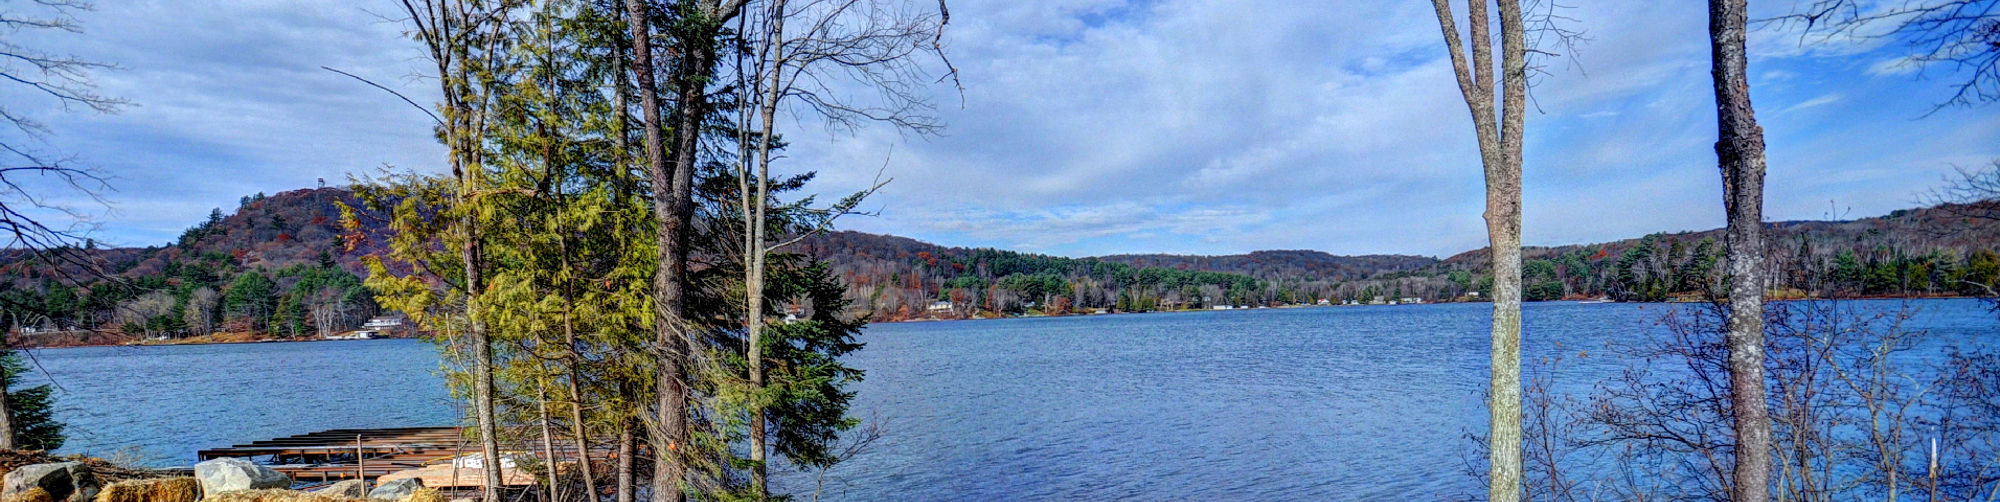 Lake of Bays Real Estate